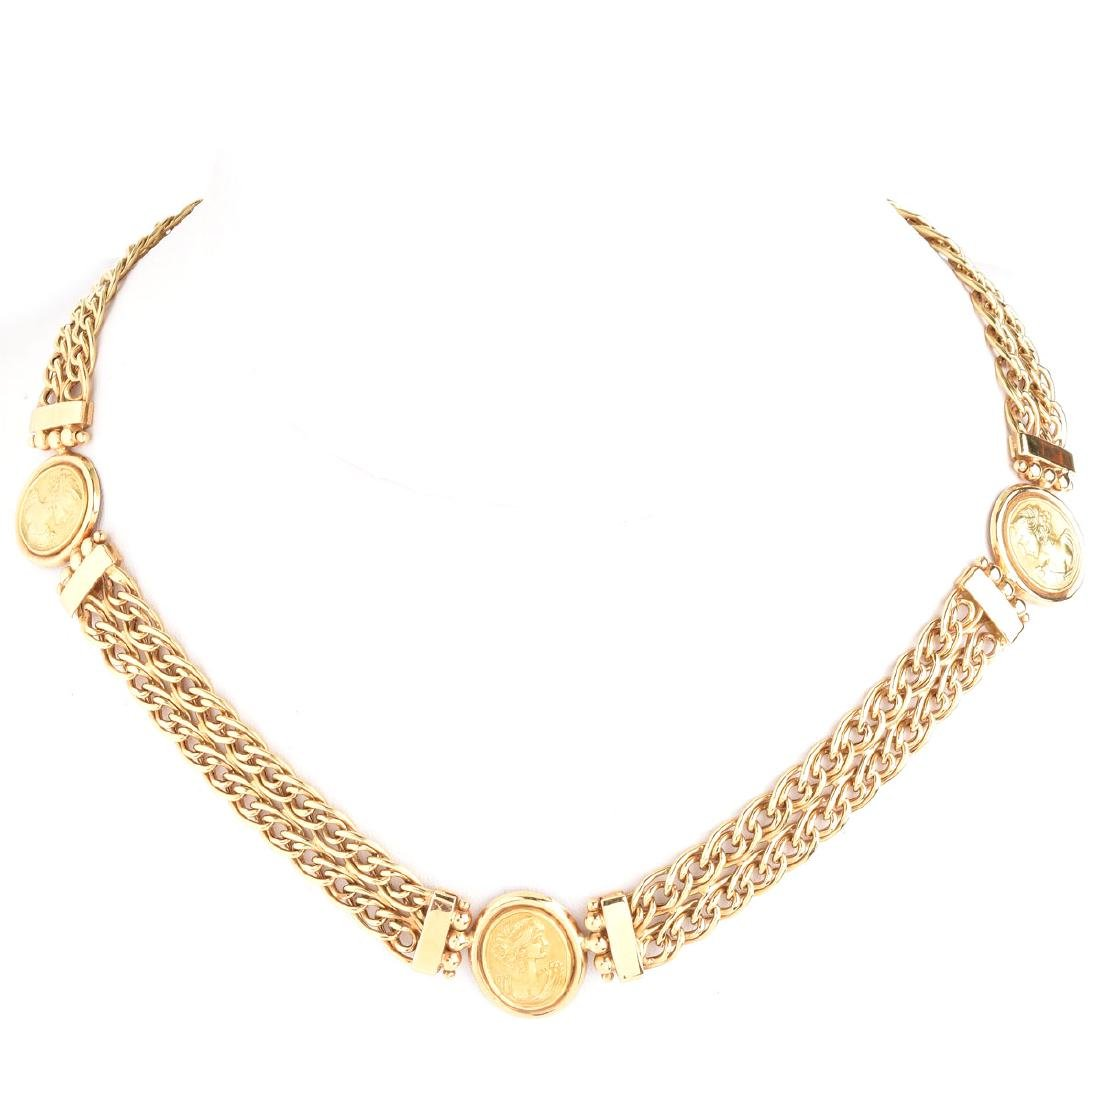 Vintage Italian 18 Karat Yellow Gold Necklace with